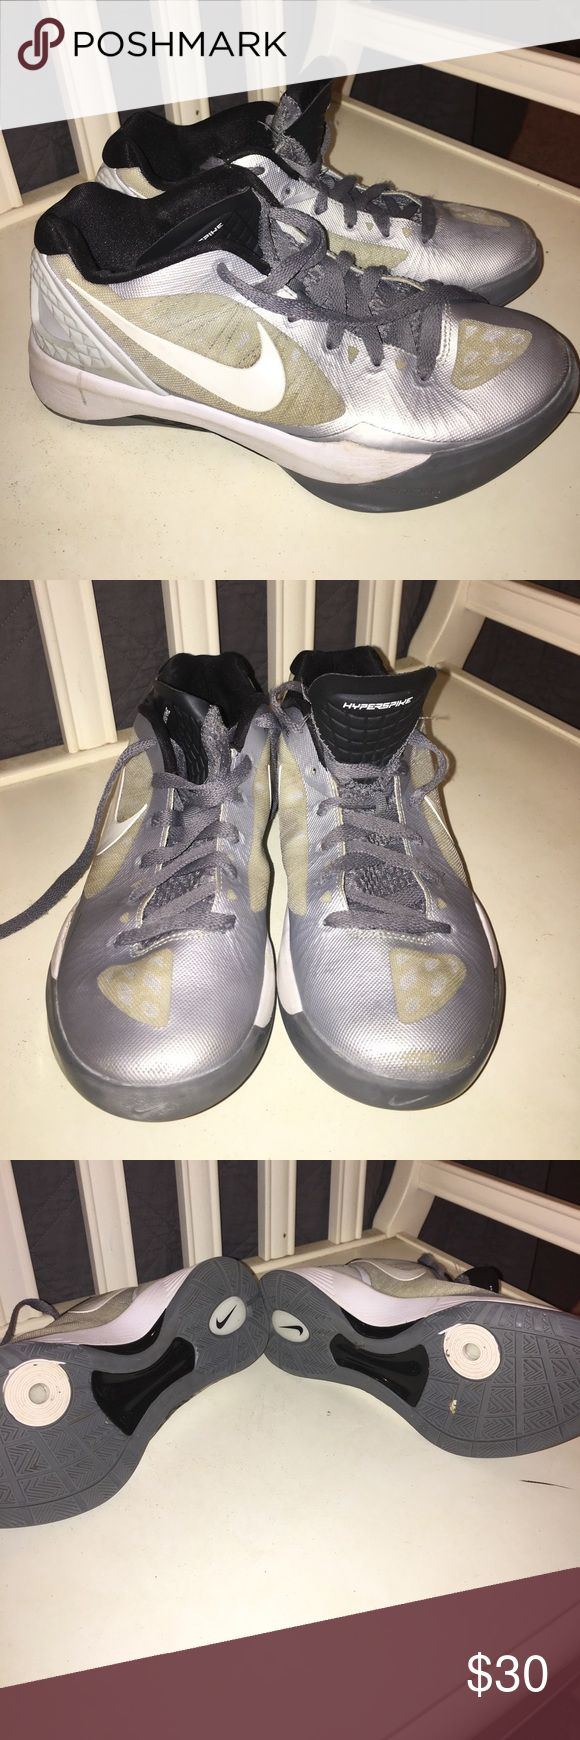 Women's Nike volleyball shoes Women's Nike gray and white volleyball shoes. Hyper spike 8 1/2 size. Only wore on court for one season. Great condition Nike Shoes Athletic Shoes